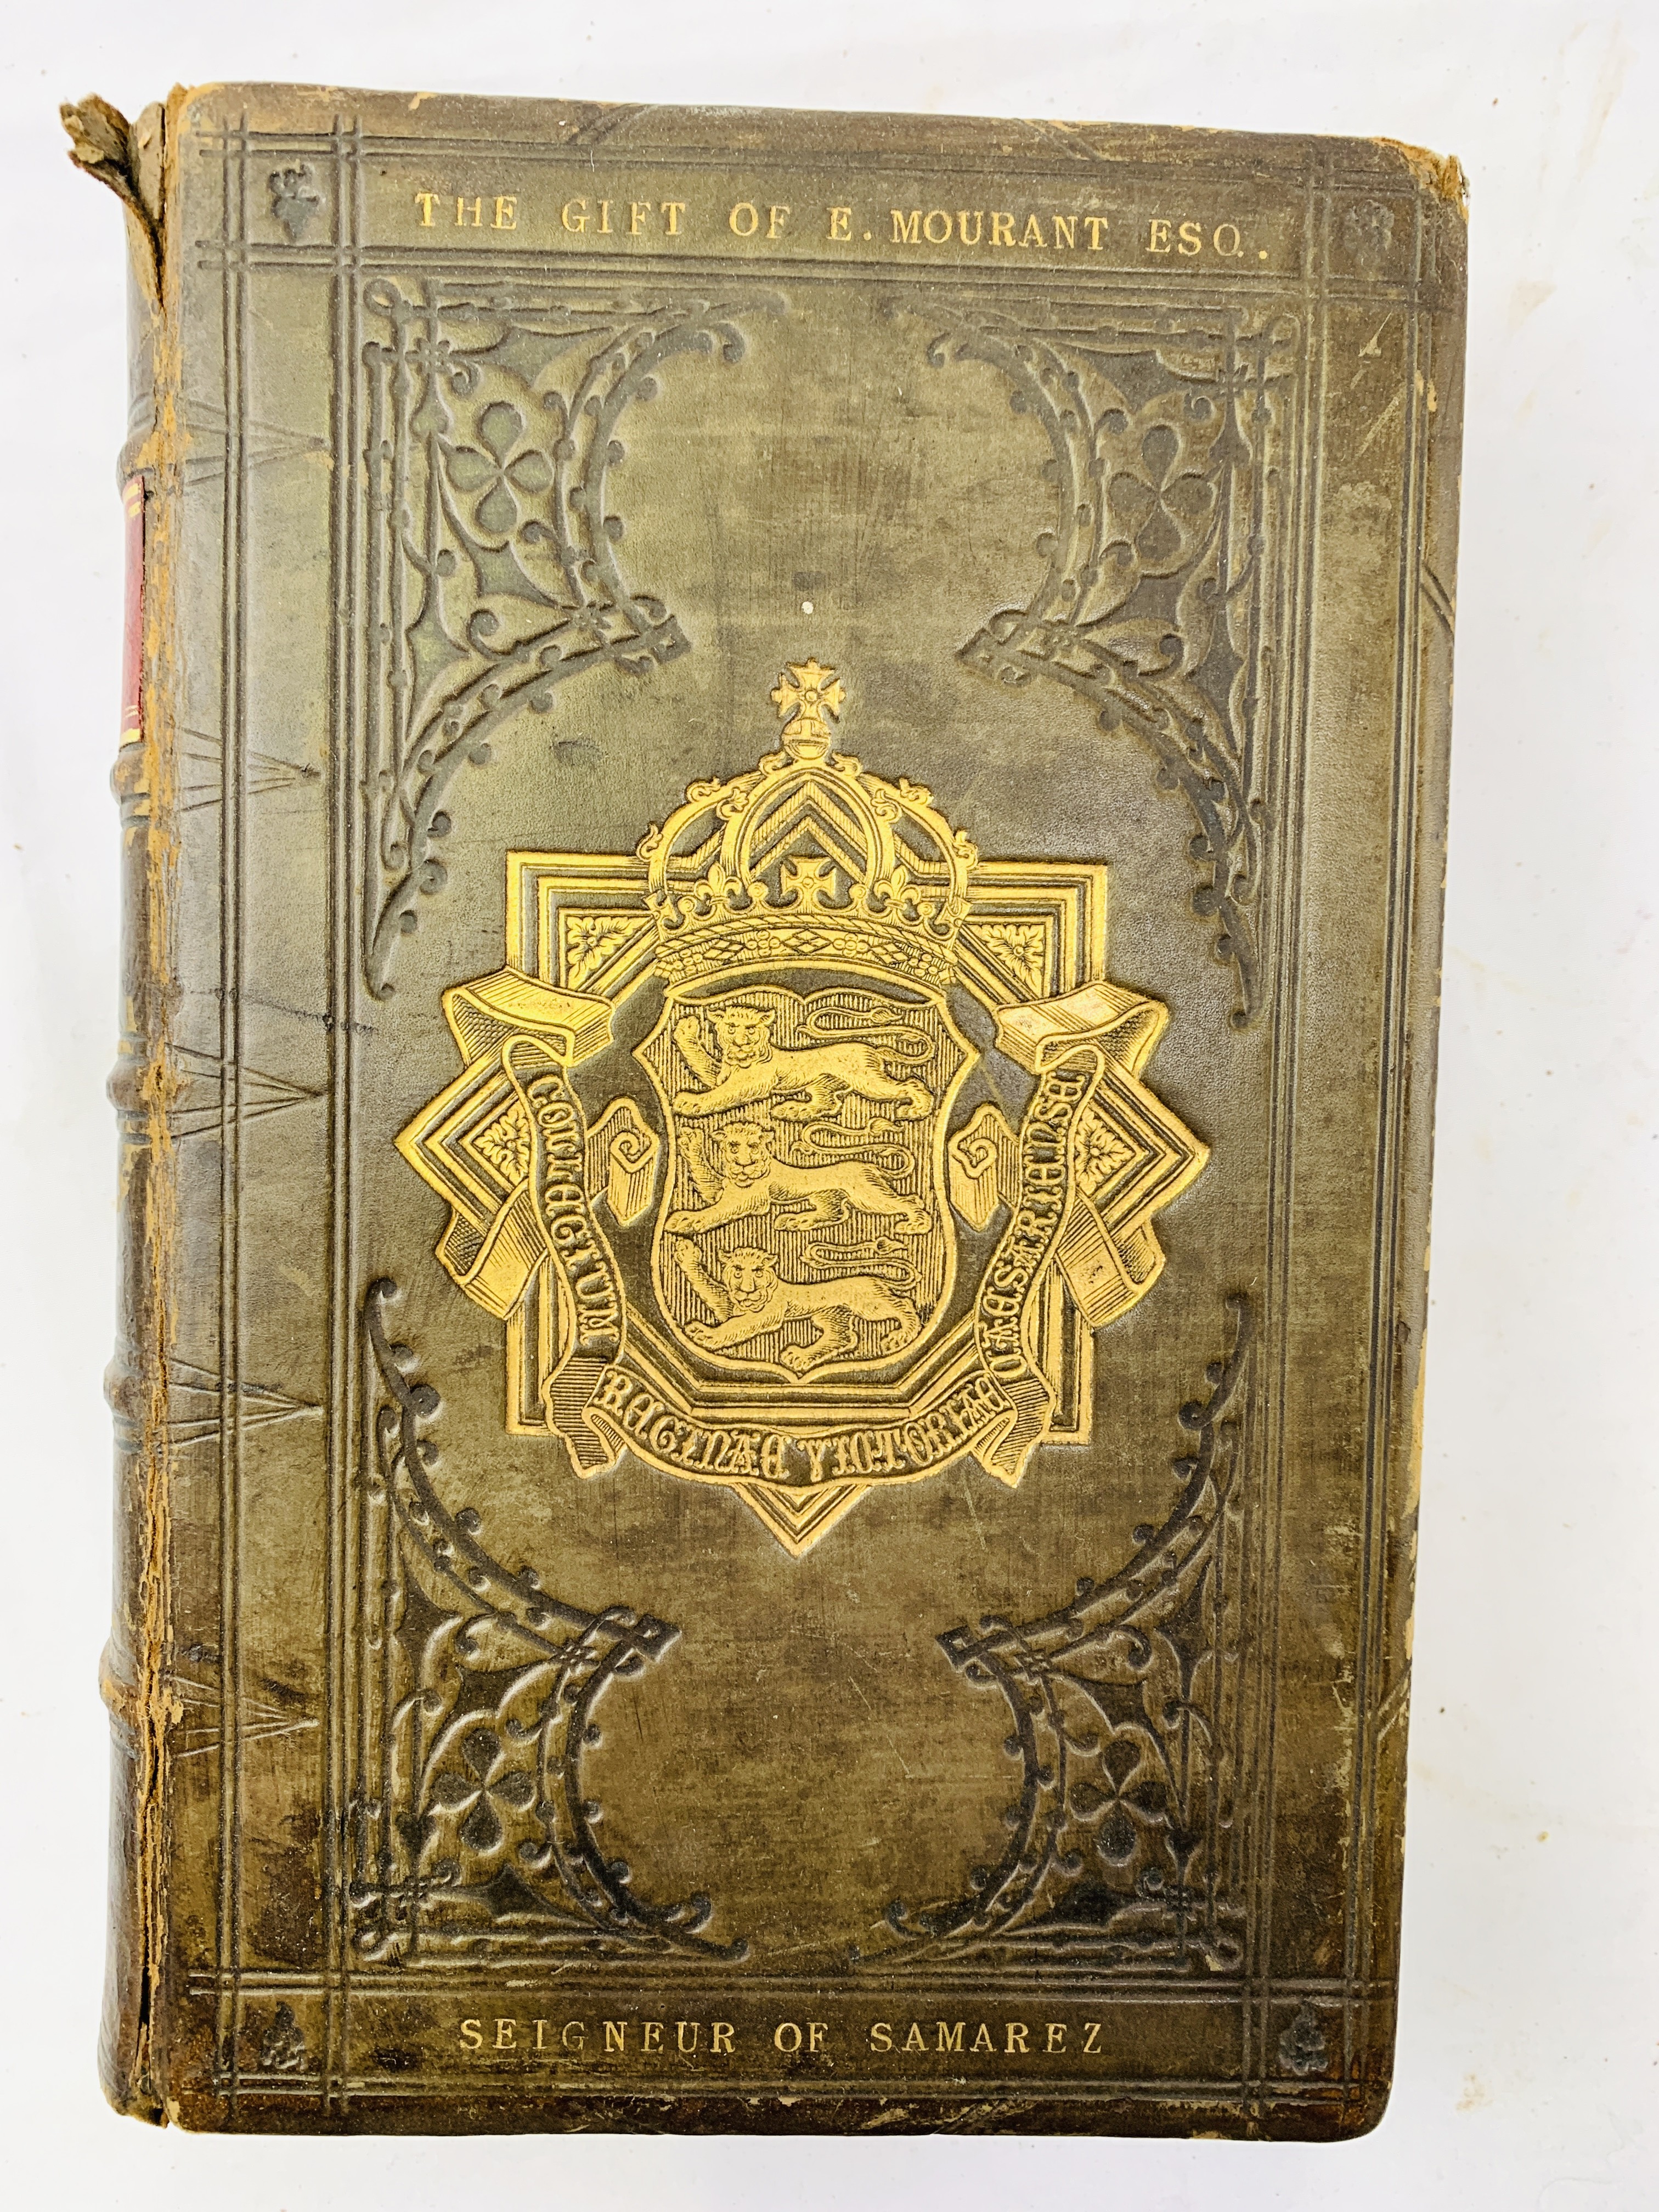 Sinai and Palestine by Arthur Penrhyn Stanley, complete with maps and plans, 1862